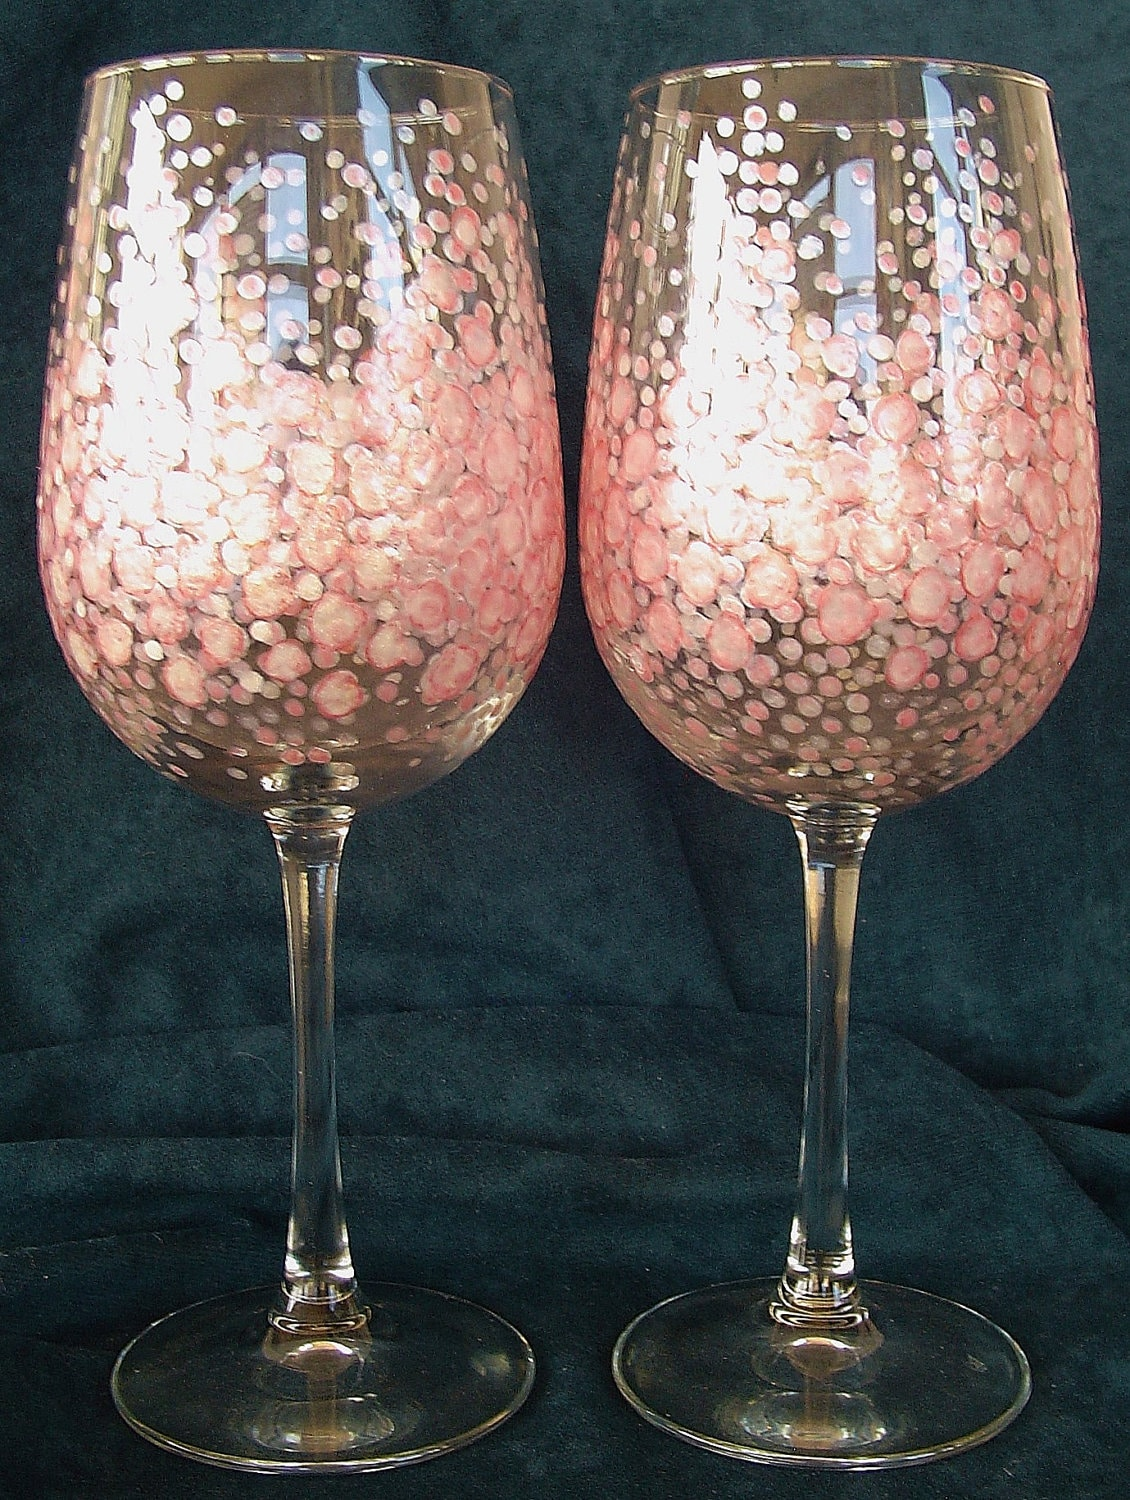 Hand painted wine glasses artistic design by owenfinearts Images of painted wine glasses